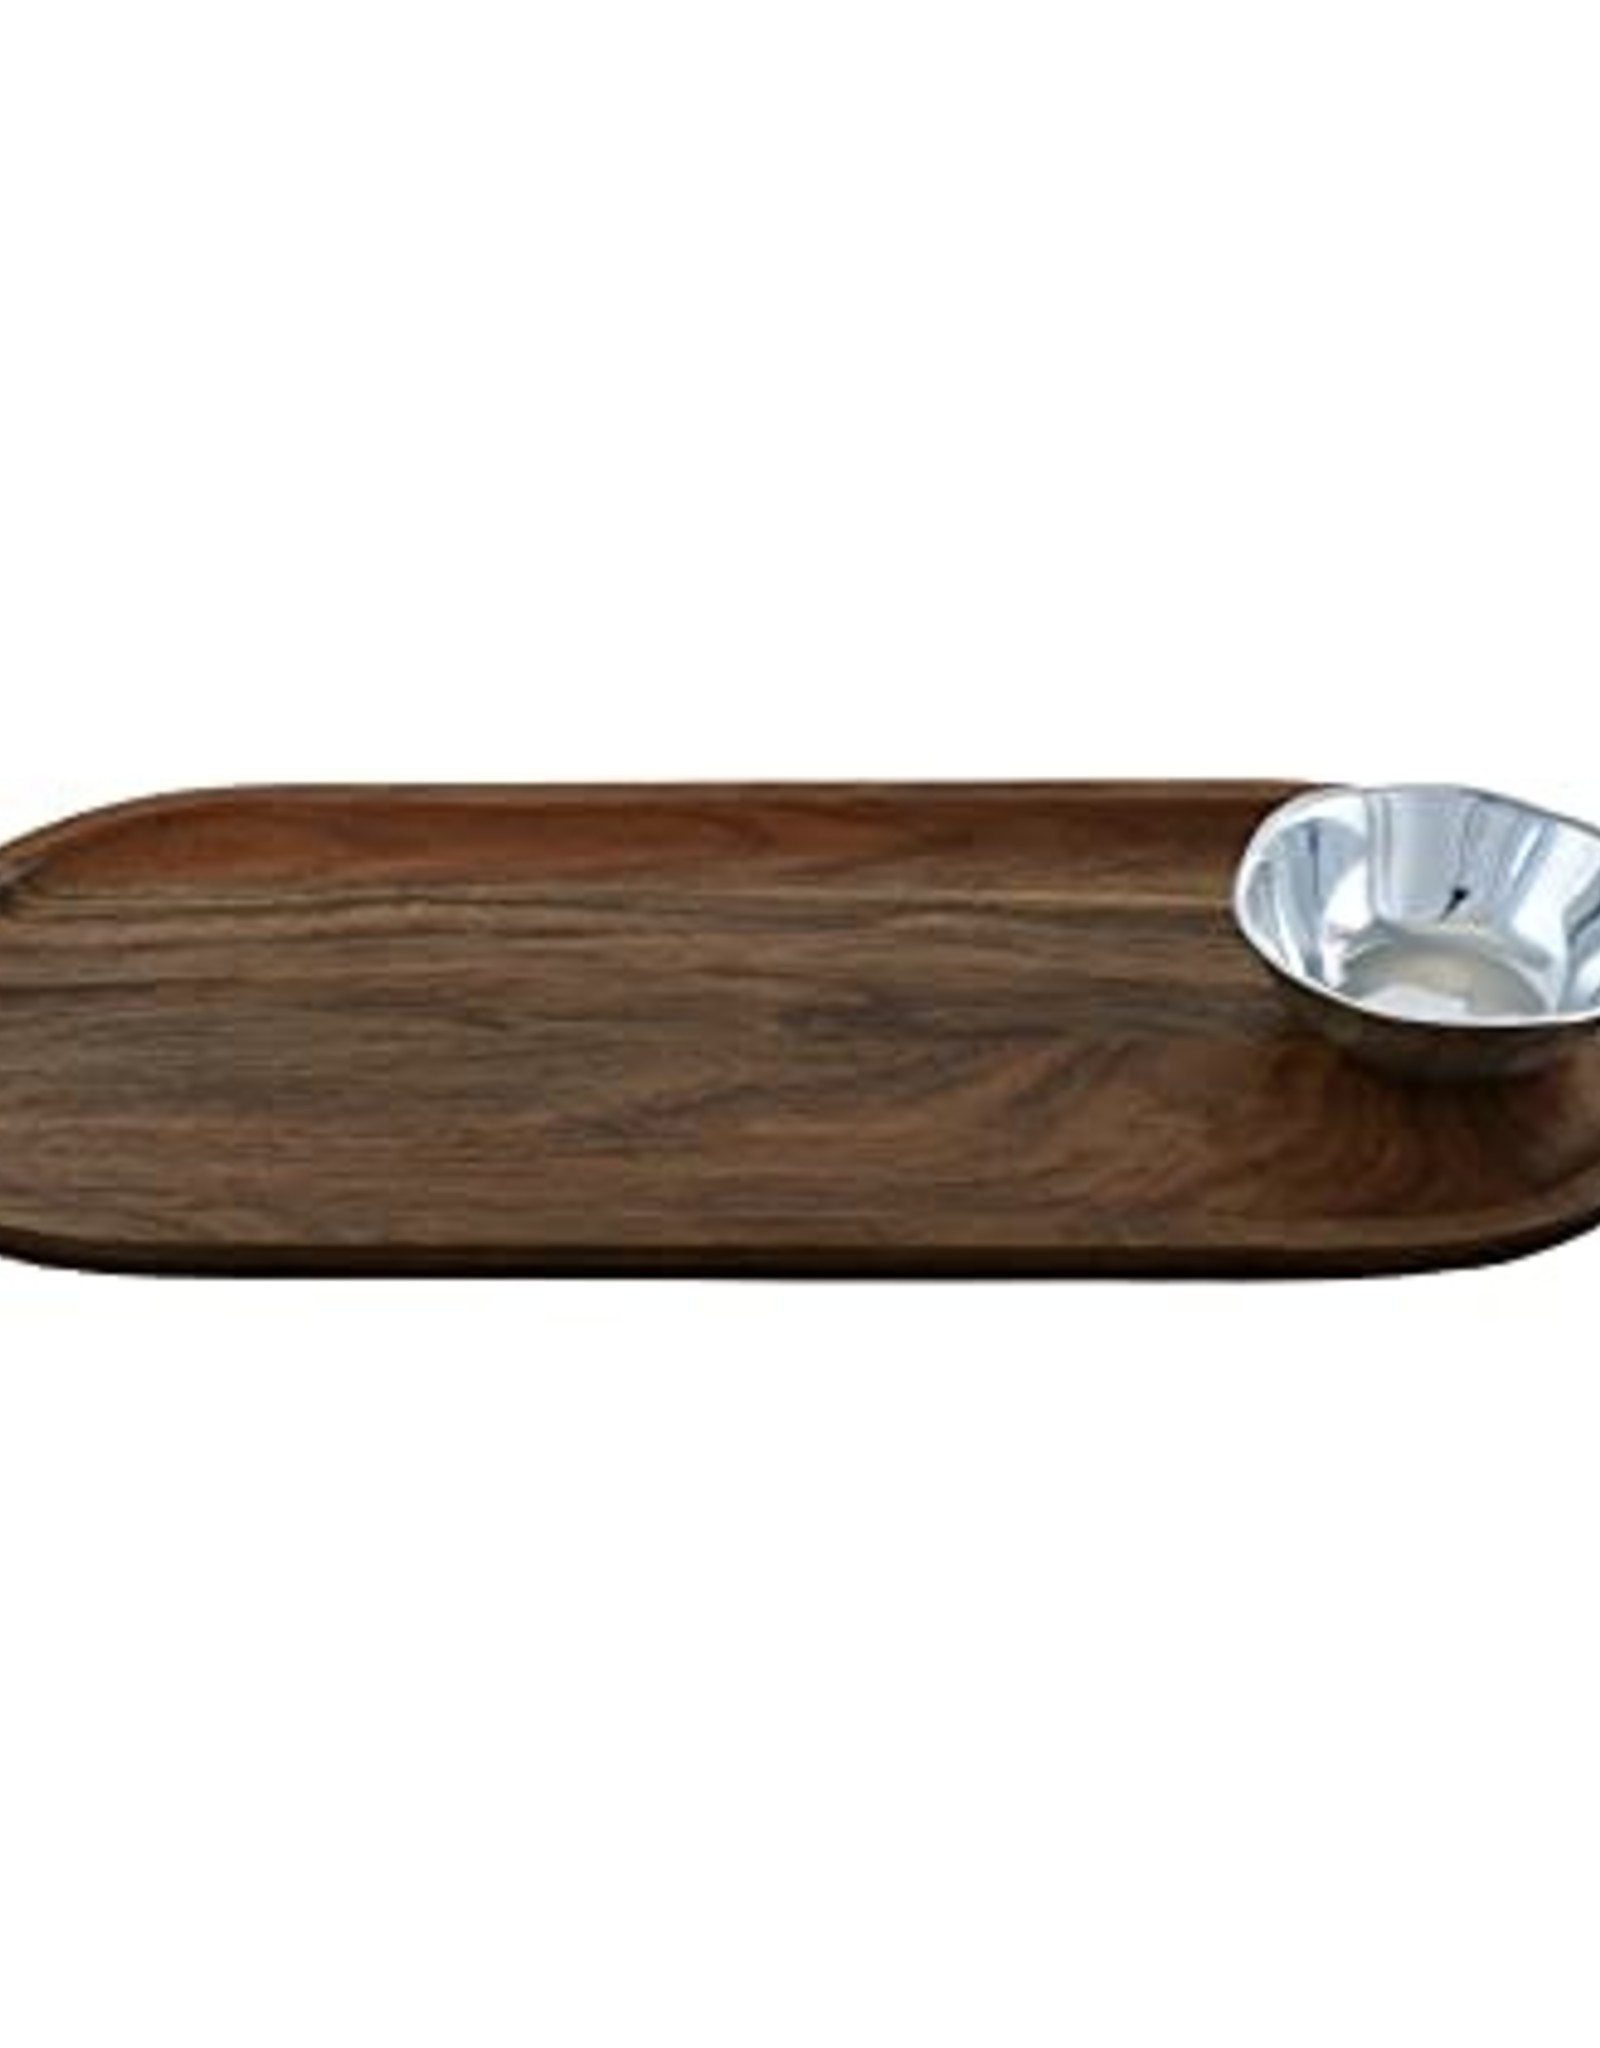 Home Cutting Board with Soho Round Mini Bowl